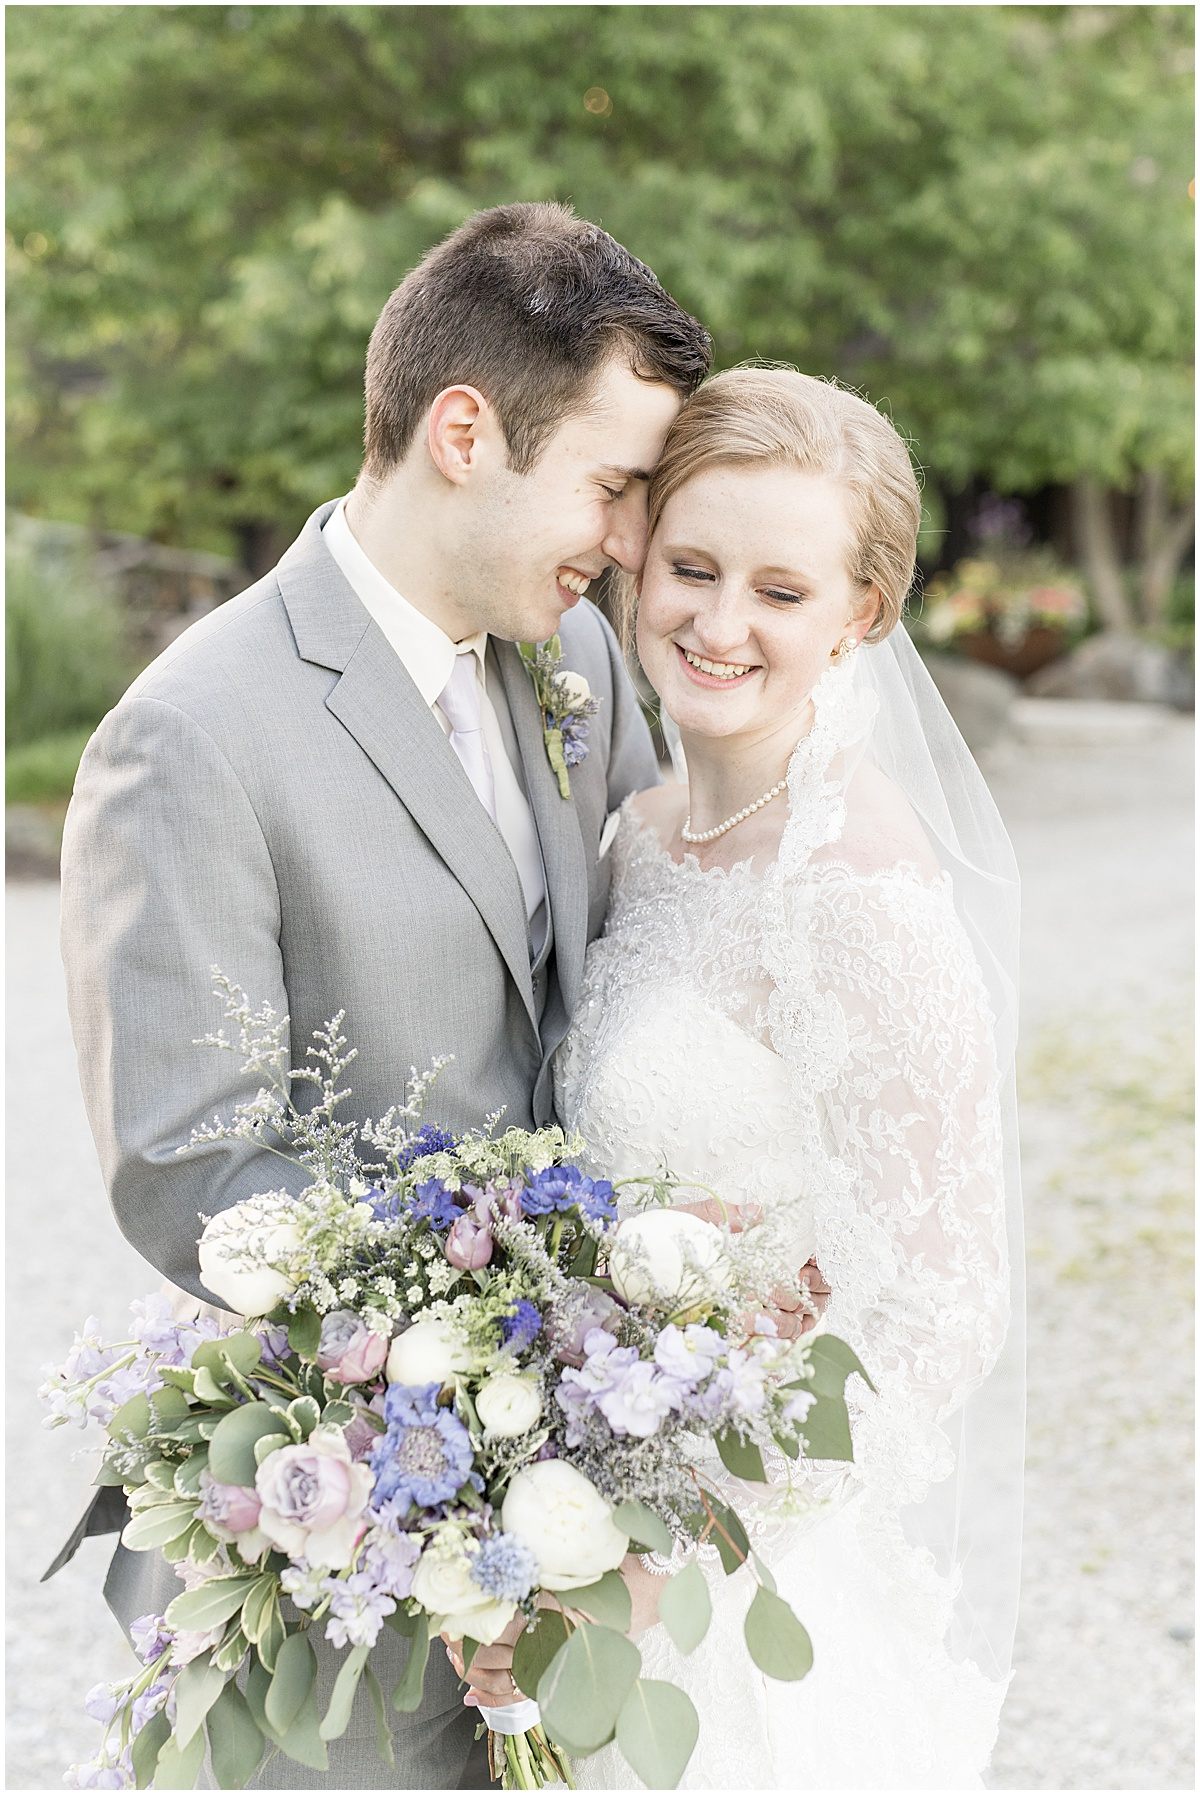 Bride and groom portrait at Traders Point Creamery wedding in Zionsville, Indiana